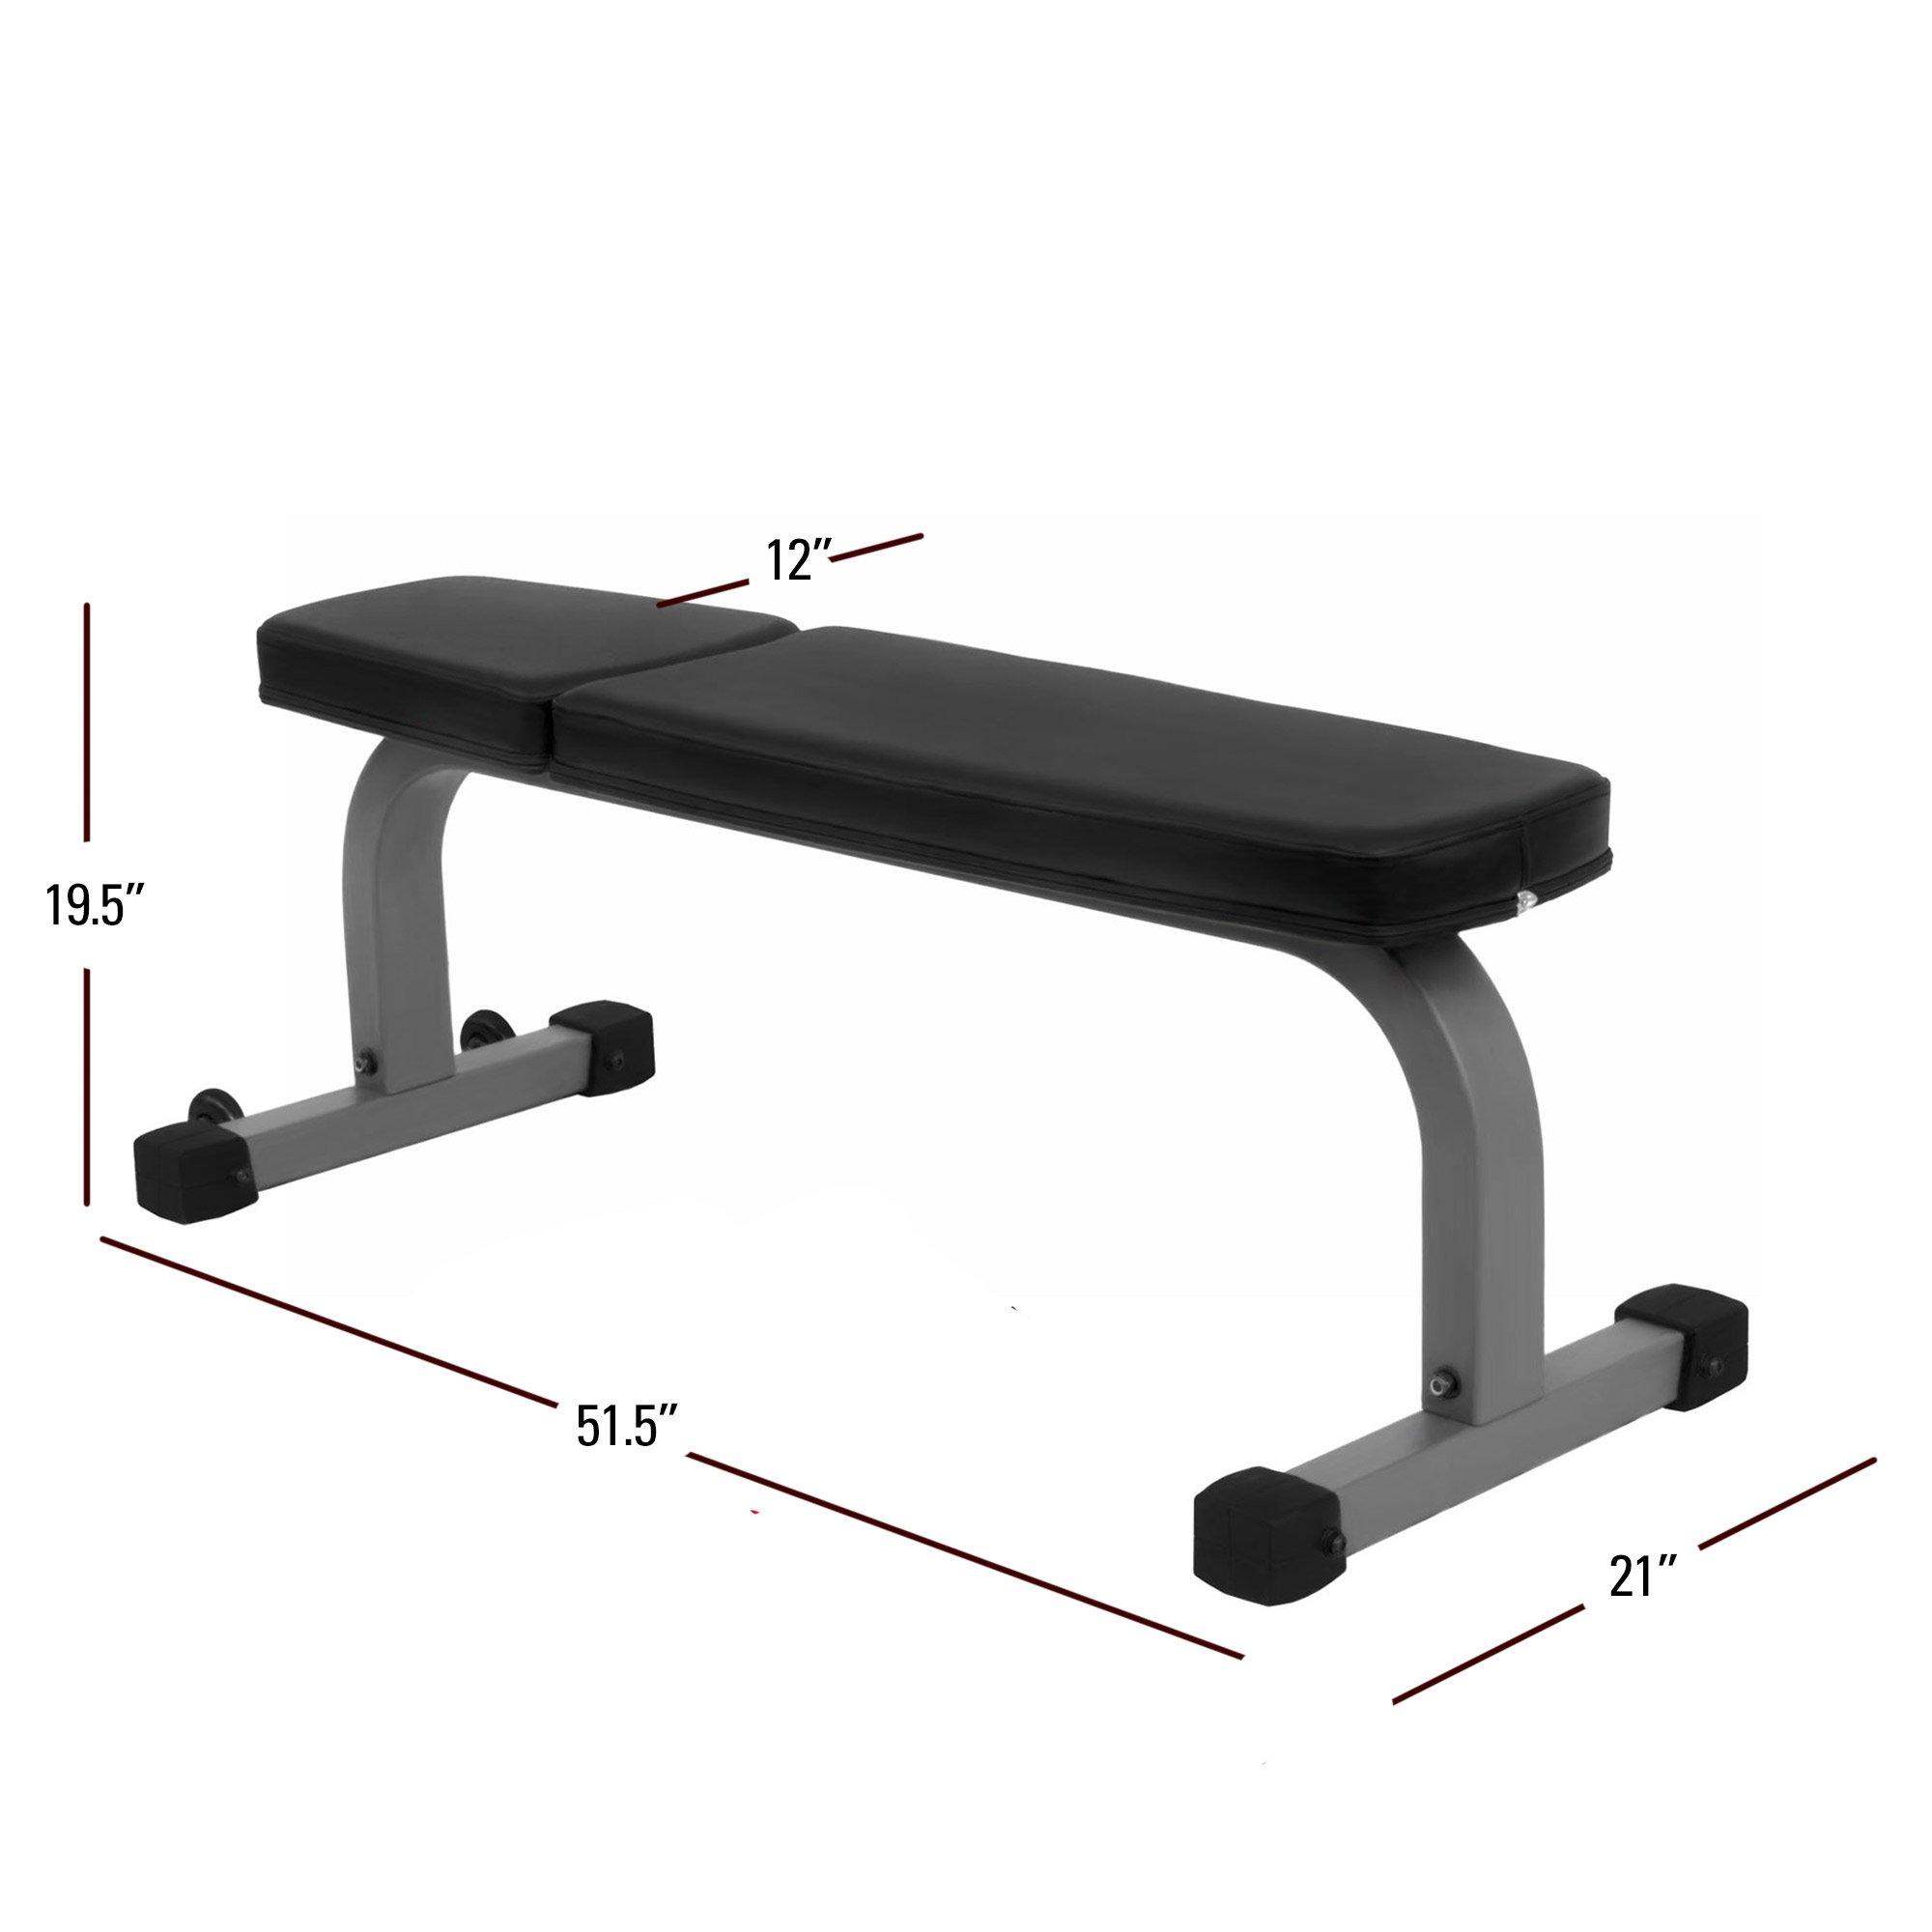 XMark Flat Weight Bench XM-7602 by XMark Fitness (Image #2)